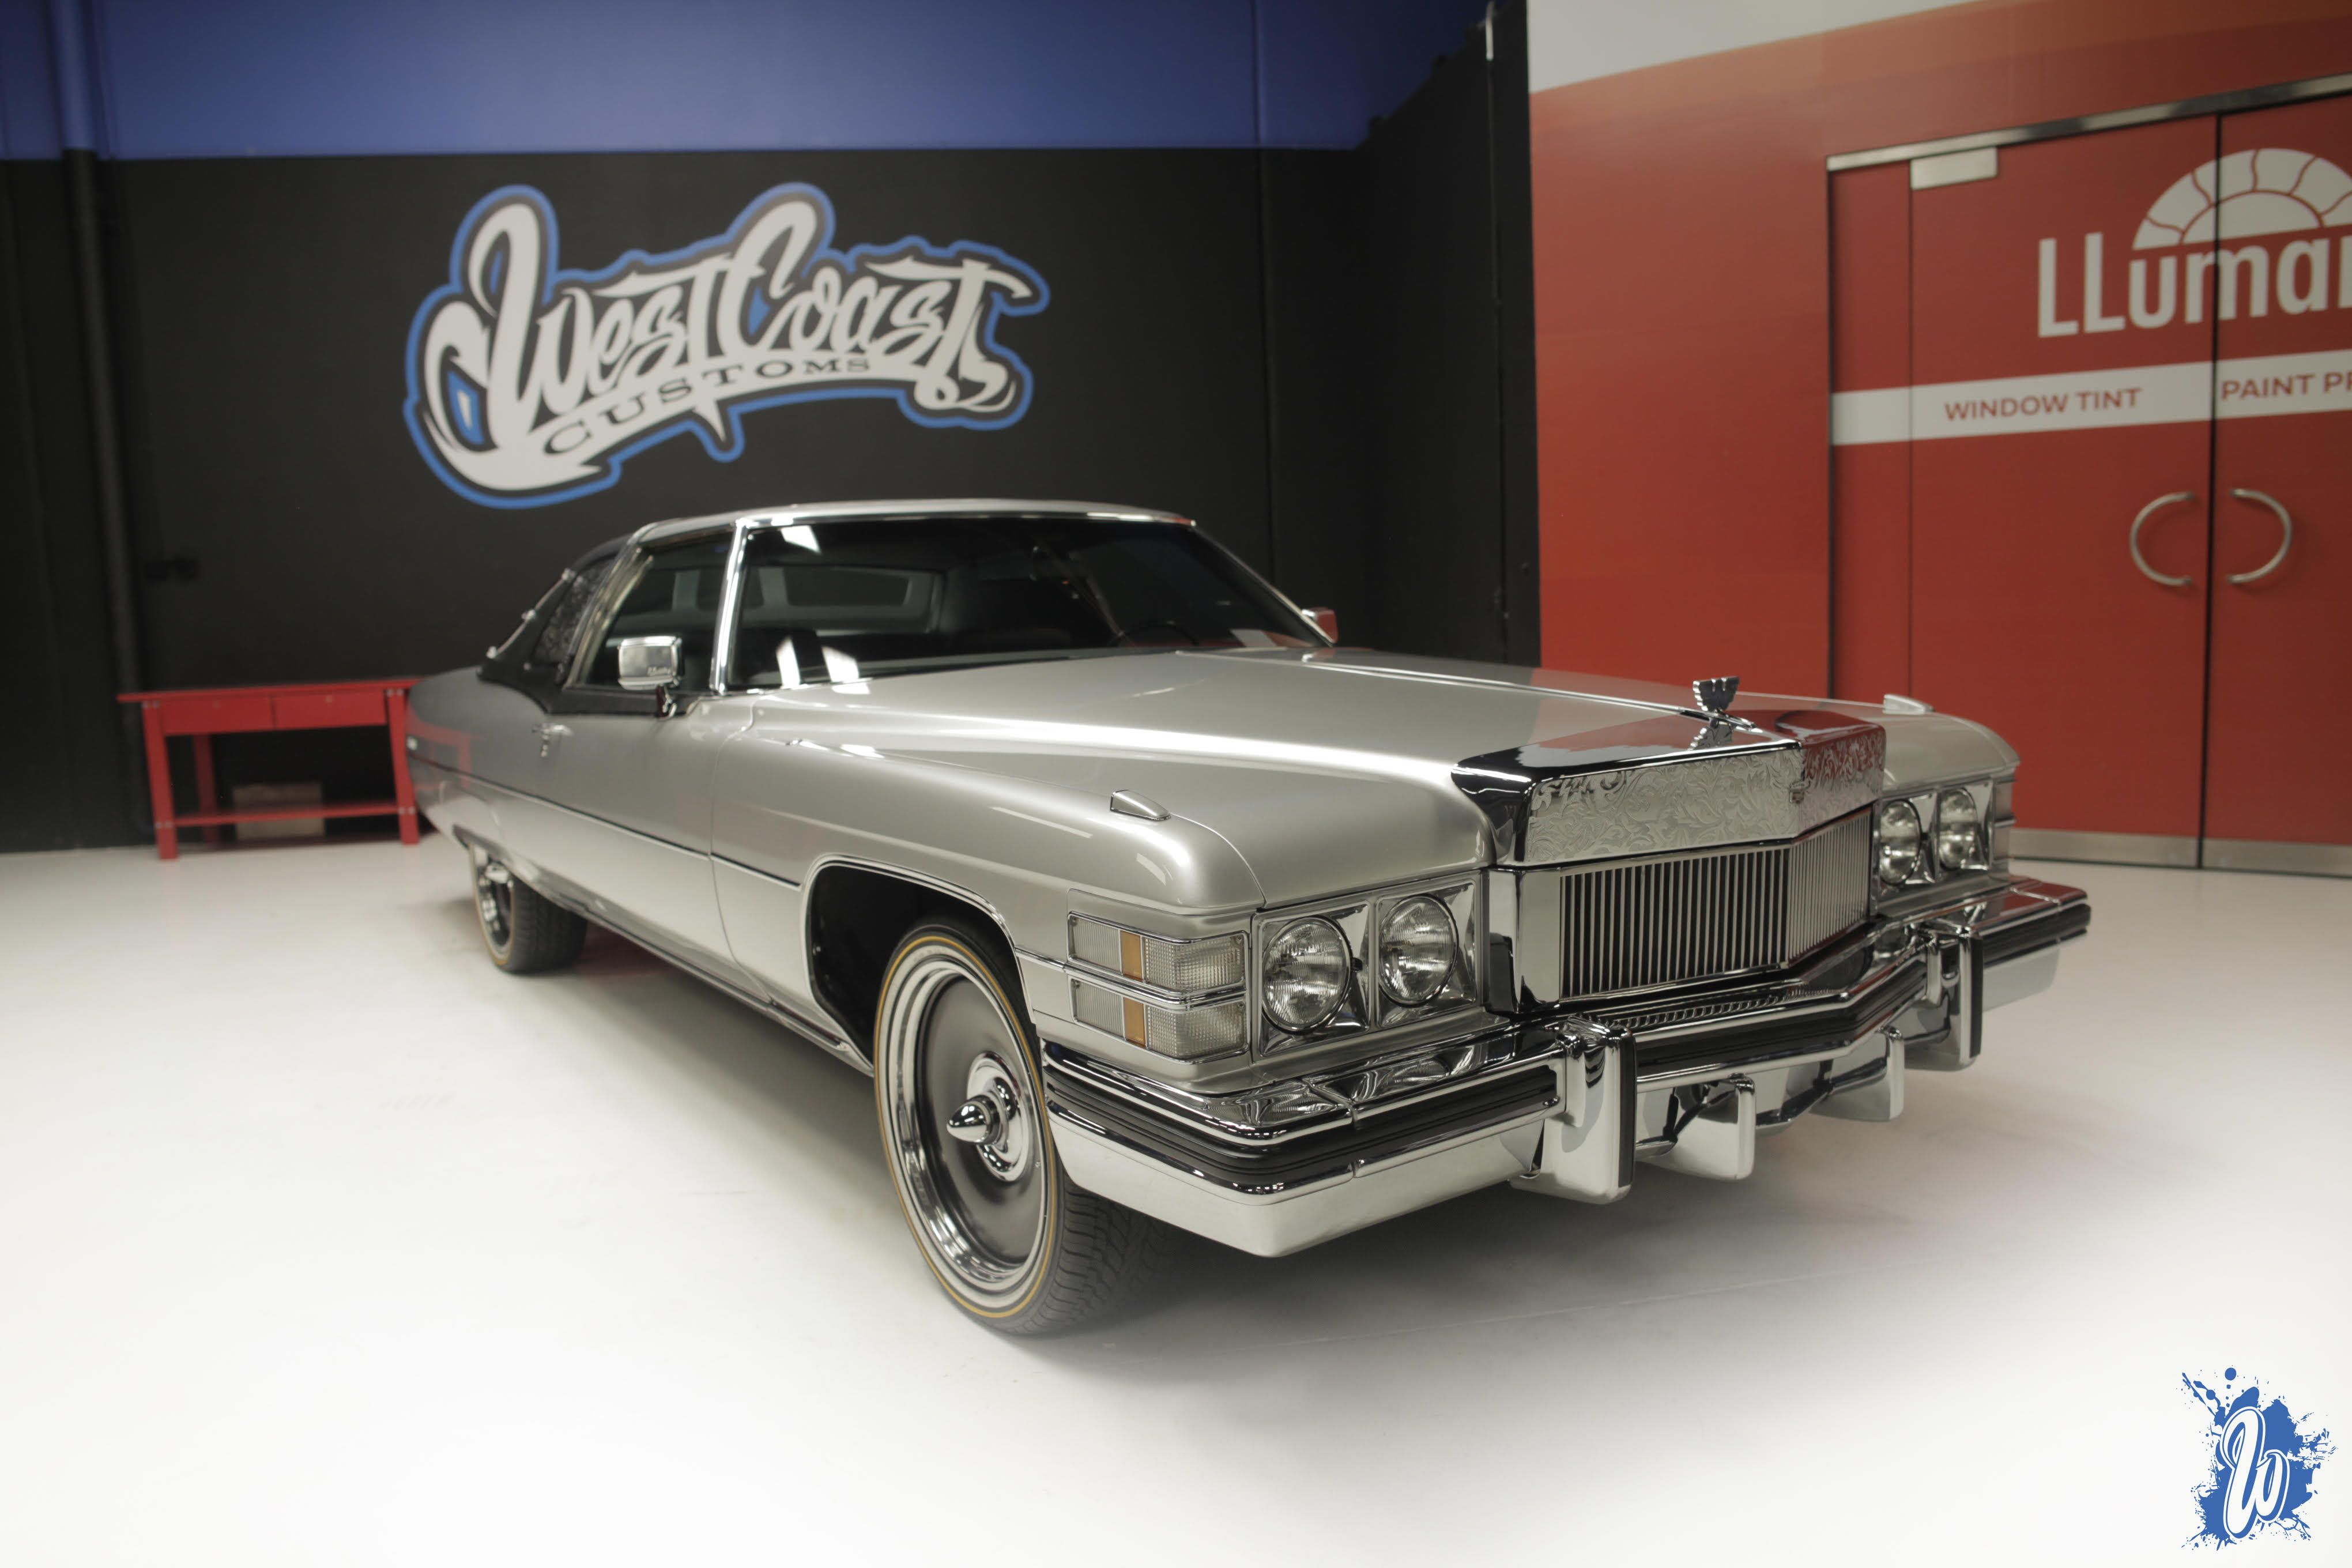 check out the latest kid rock cadillac on vogues custom made by west coast customs